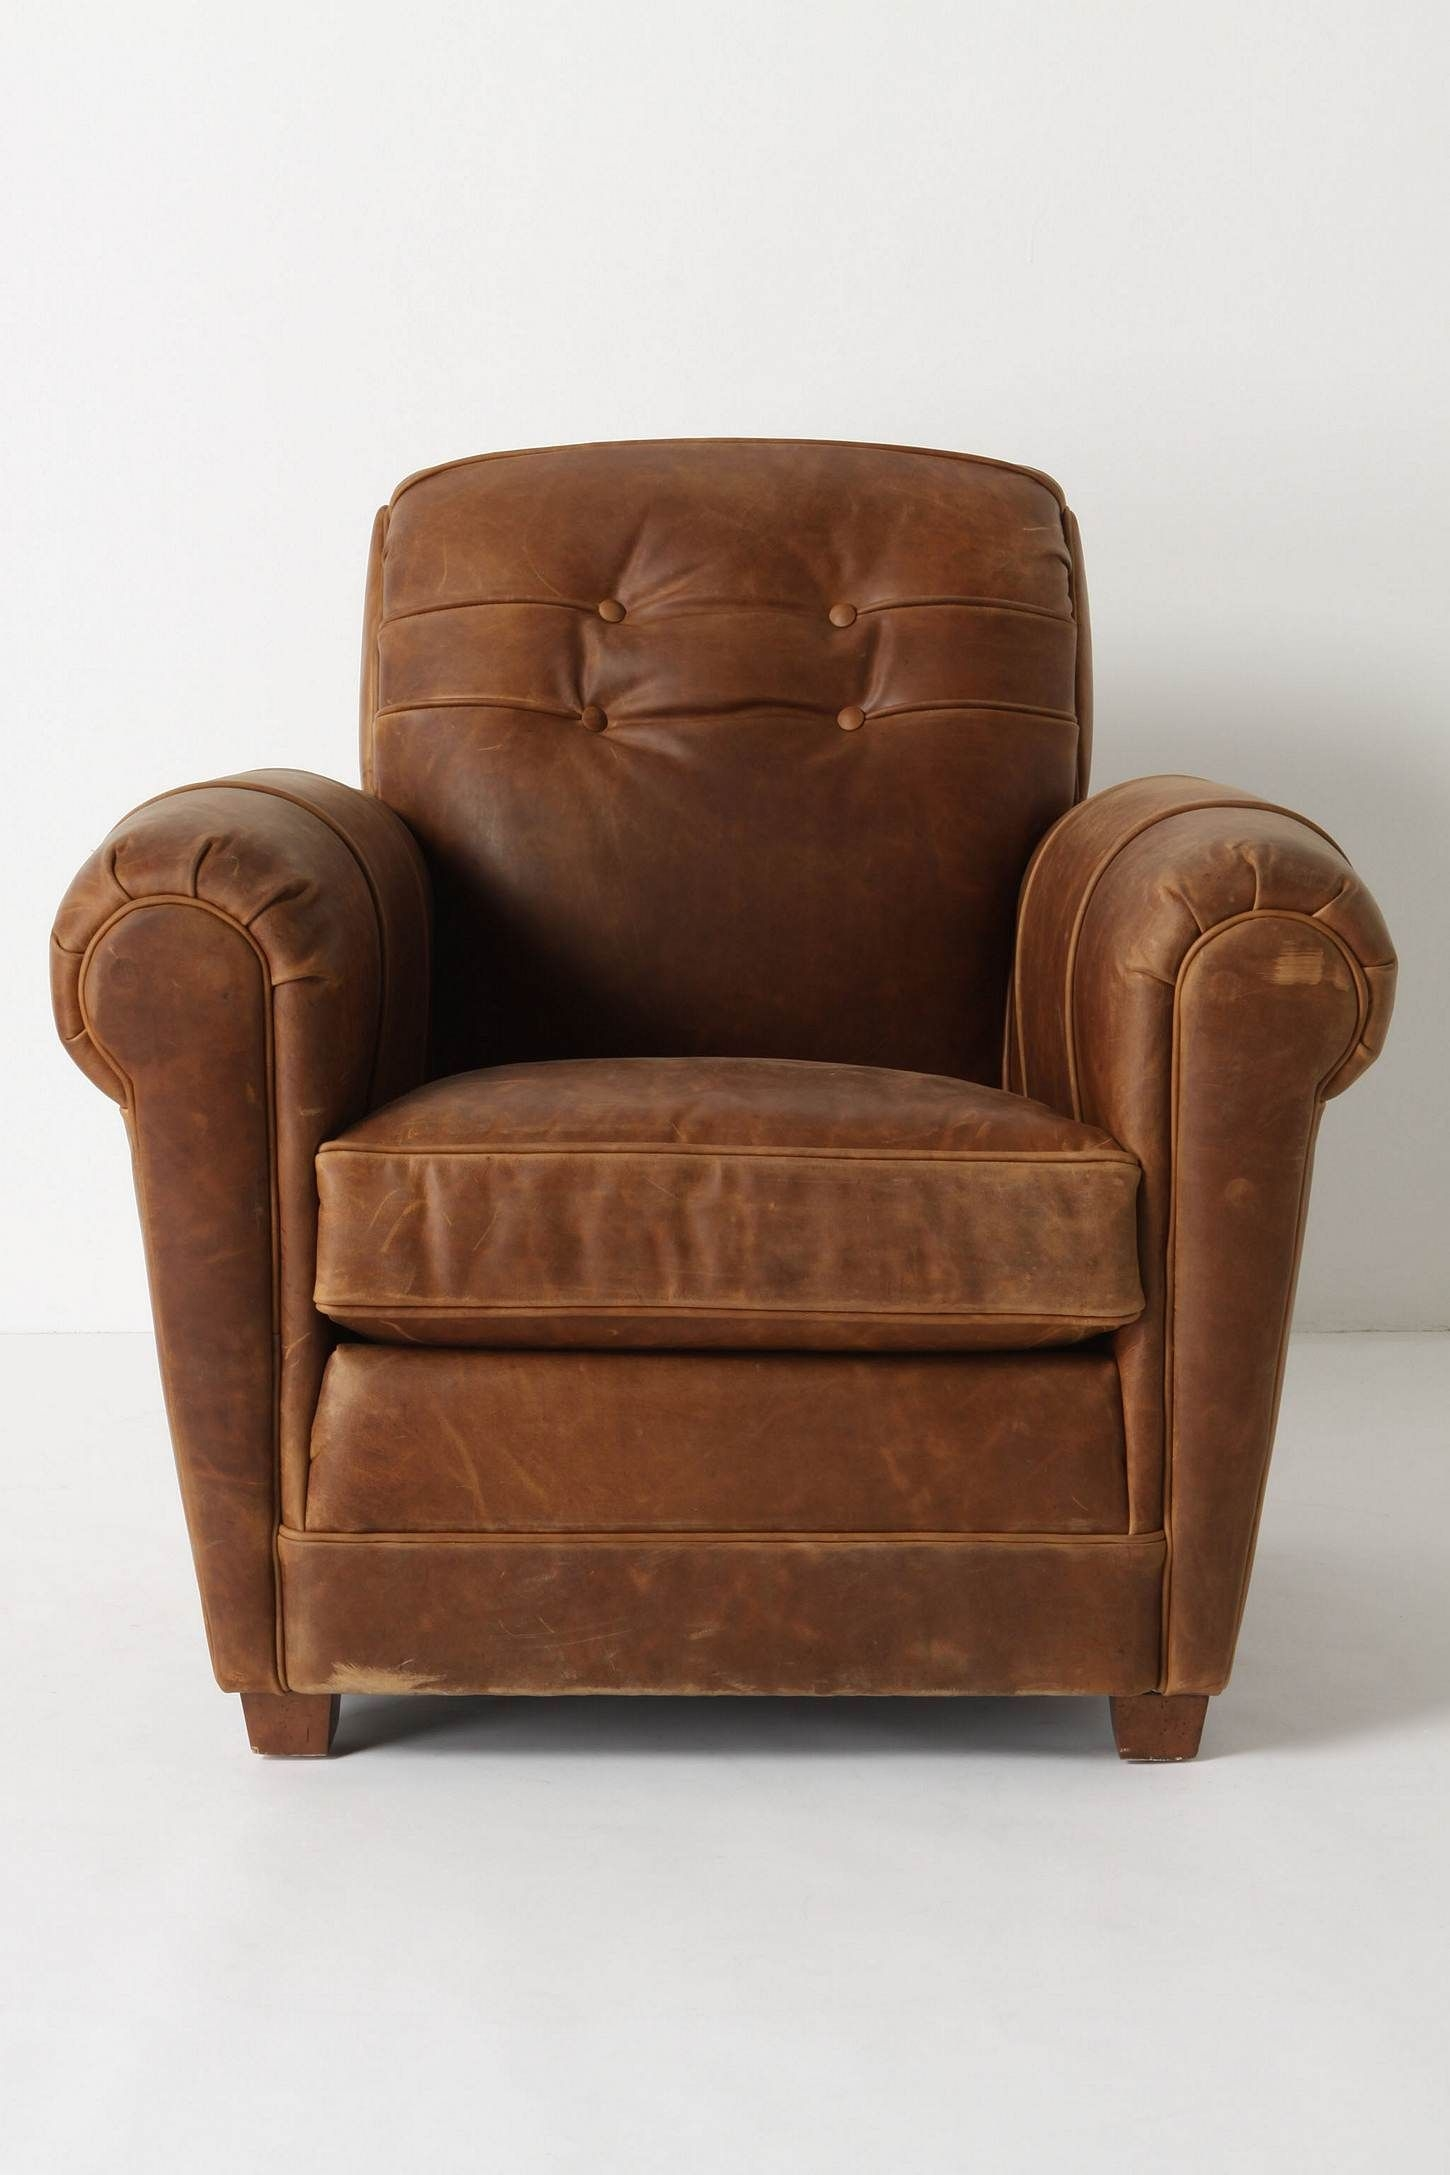 Small Leather Armchairs   Ideas On Foter